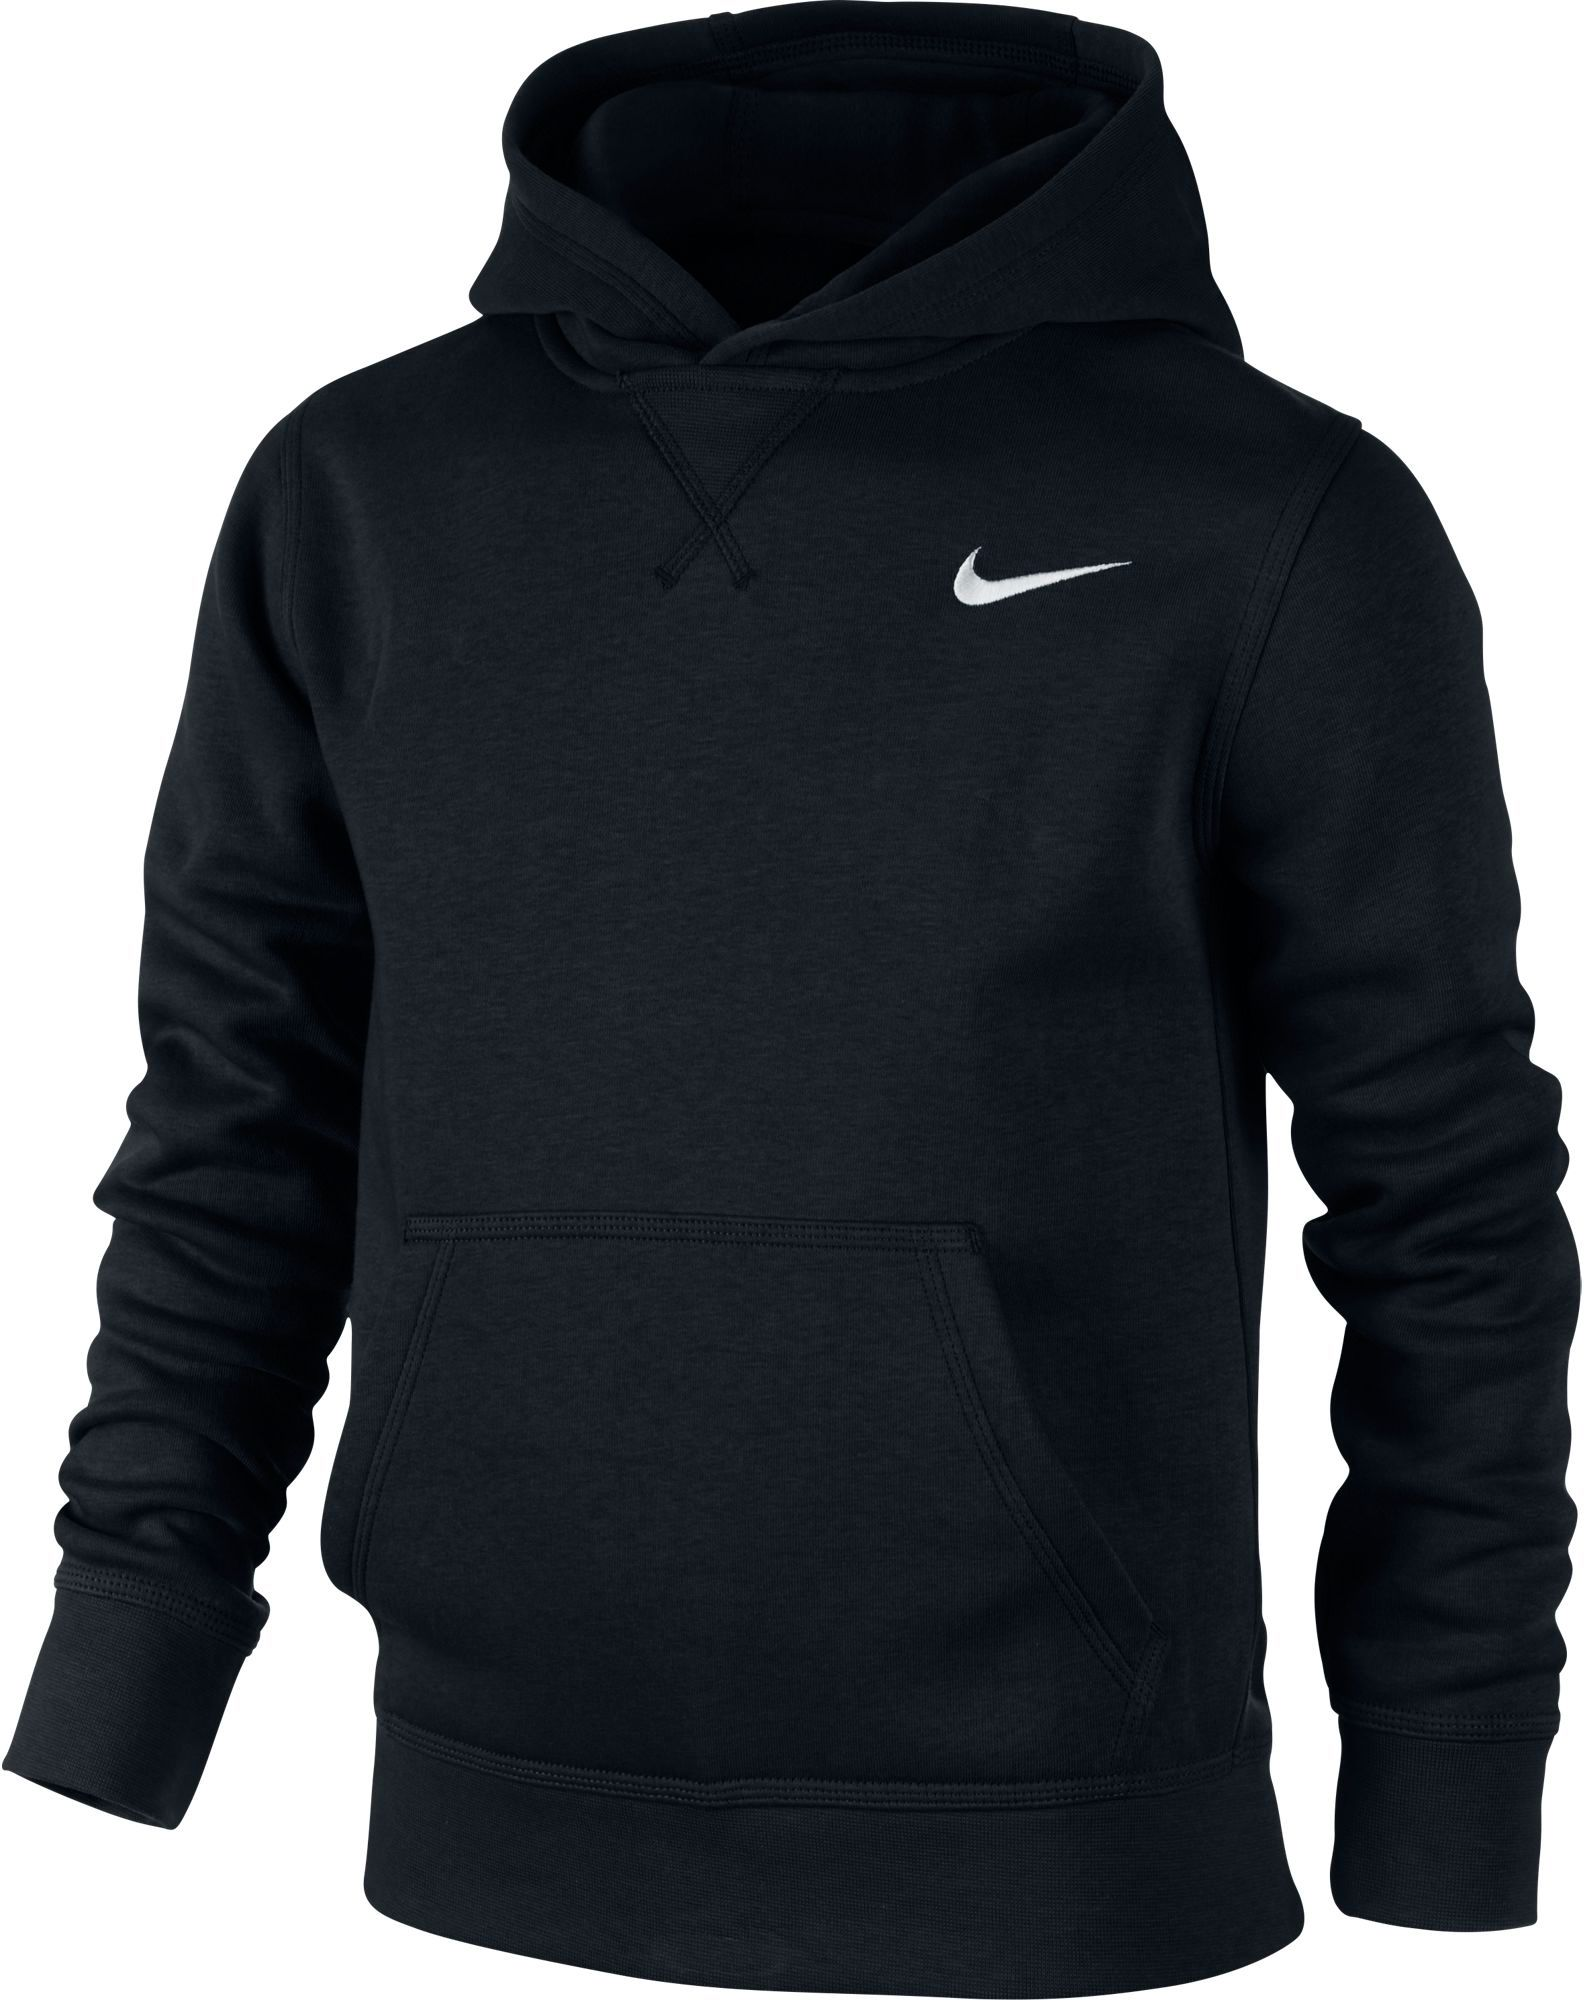 Explore our range of kids hoodies & sweatshirts from top brands including Nike, adidas & The North Face. Available to order online at JD Sports! BOYS CLOTHING New In Junior ( Years) Jackets Tracksuits Hoodies Sweatshirts T-Shirts Pants Replica.